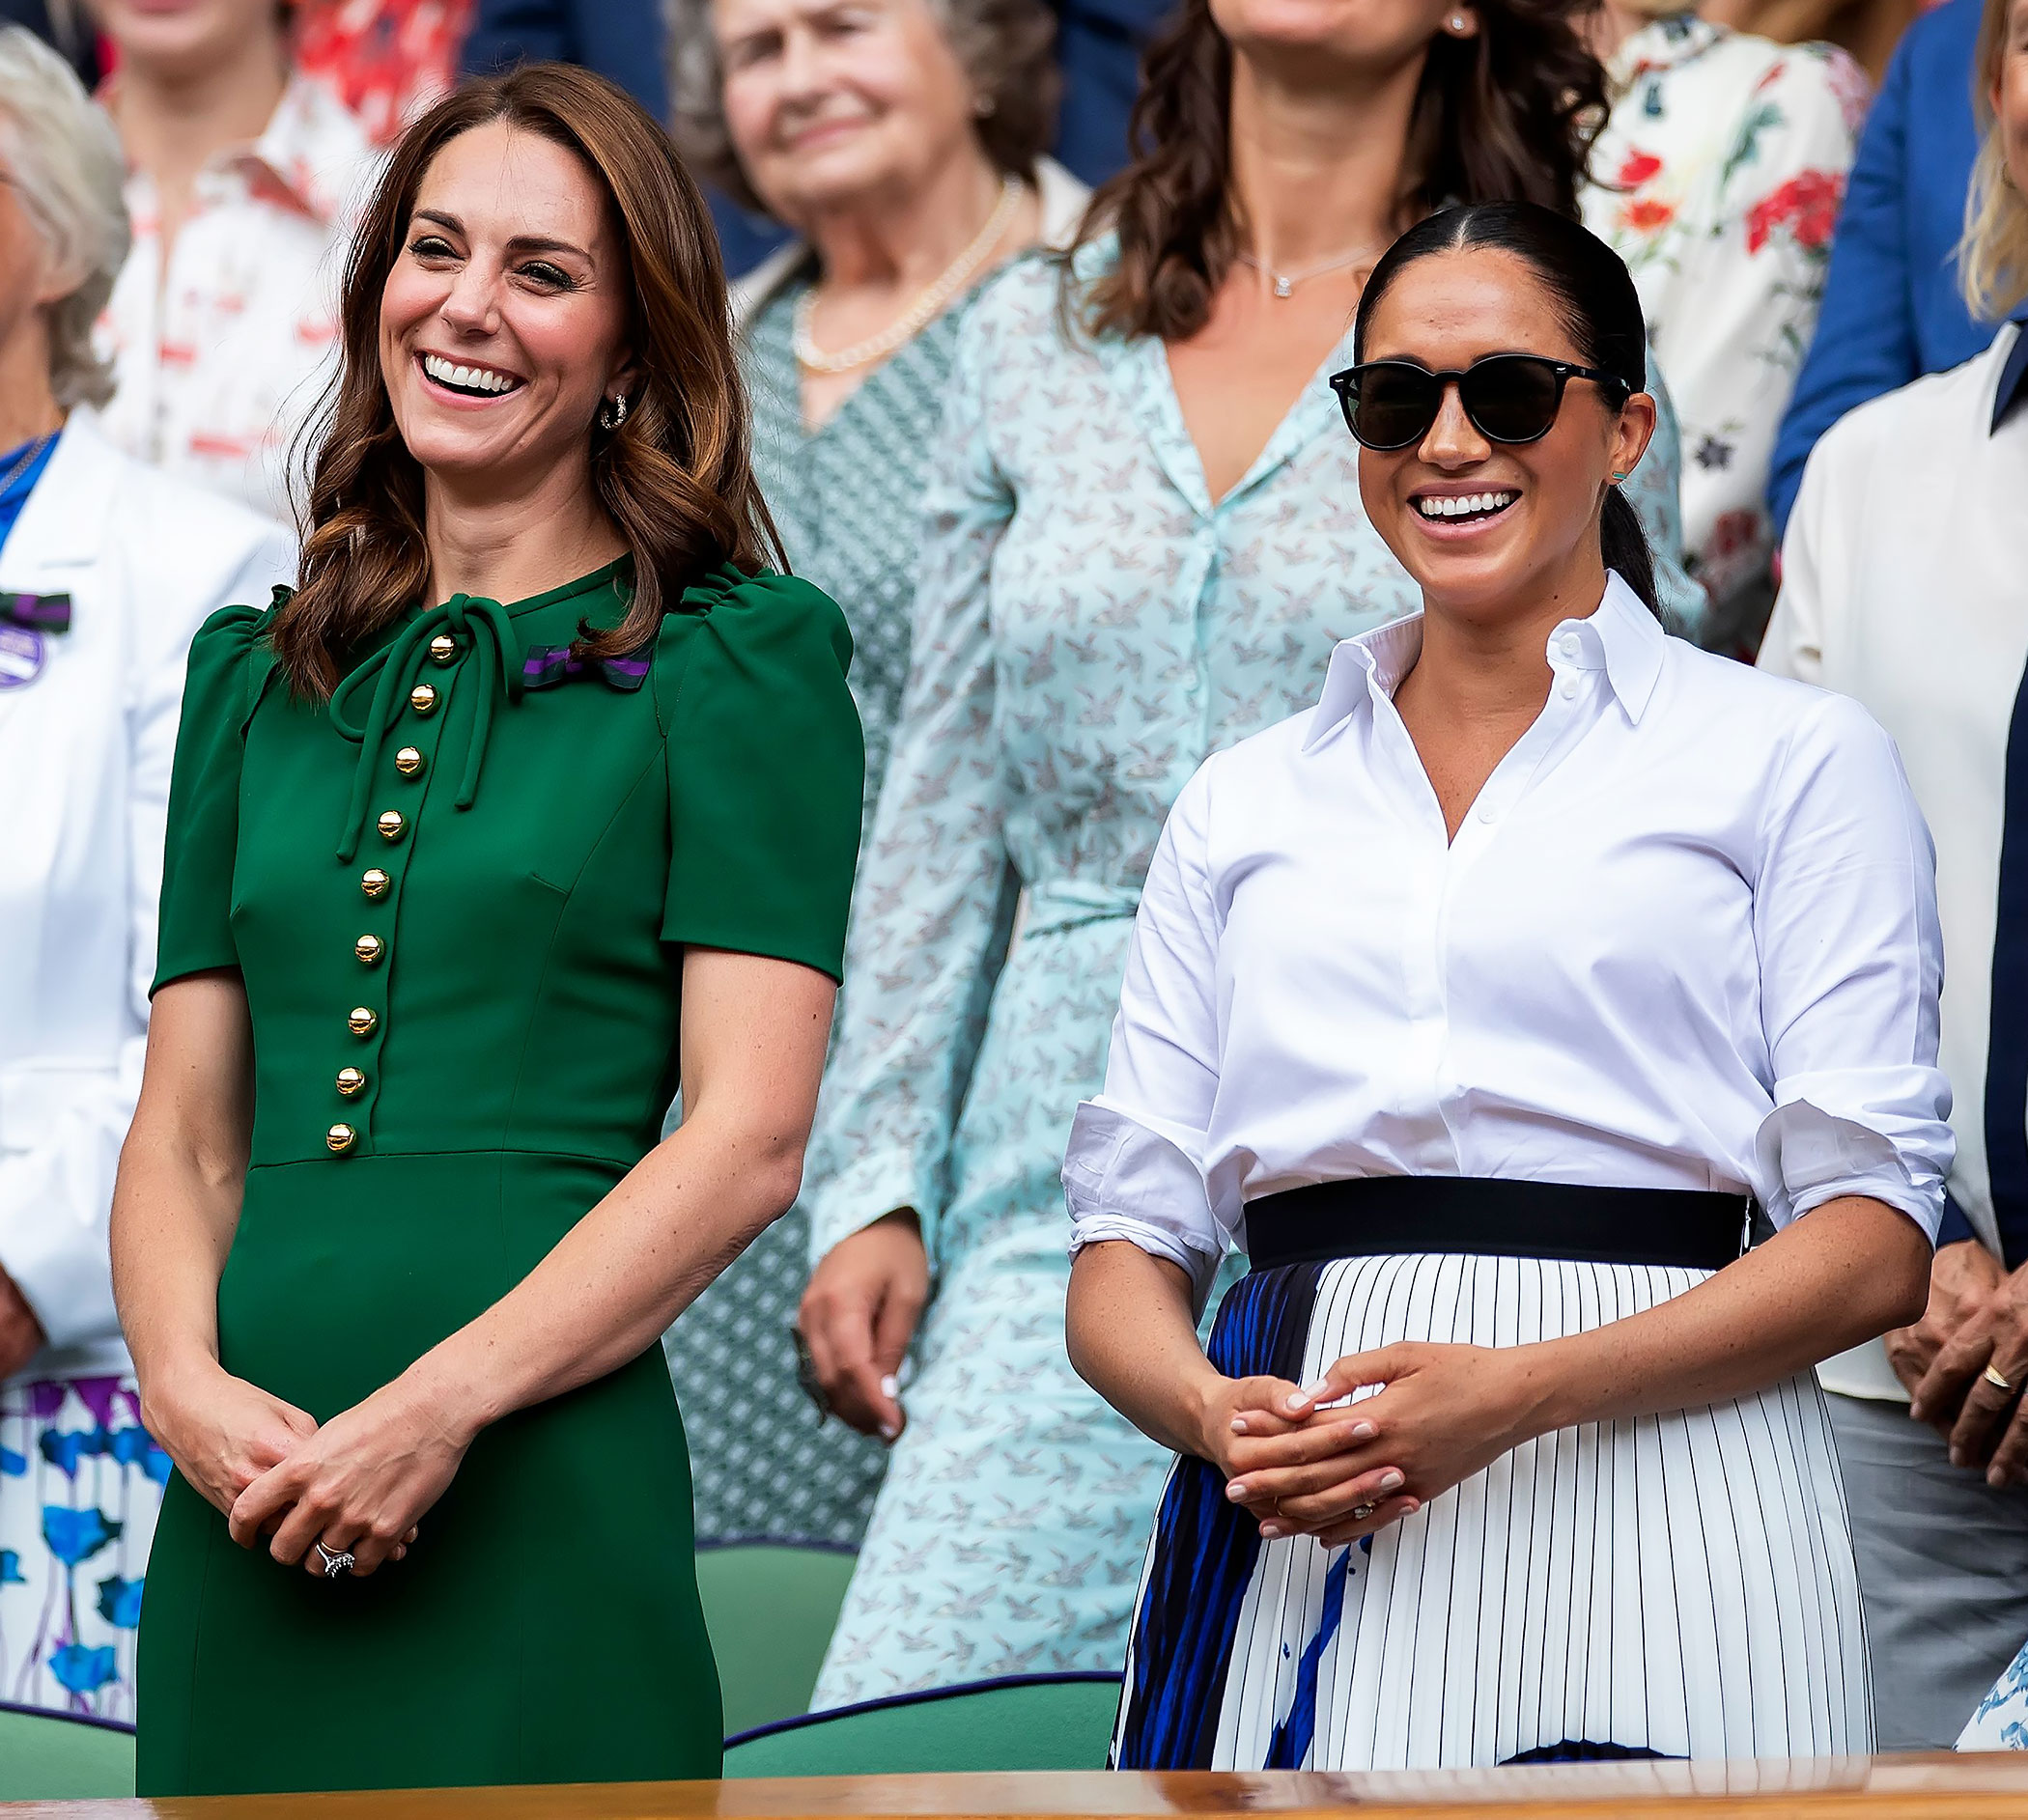 Duchess Kate 'Can't Wait to Meet' Niece Lili, Hasn't FaceTimed Her 'Yet'